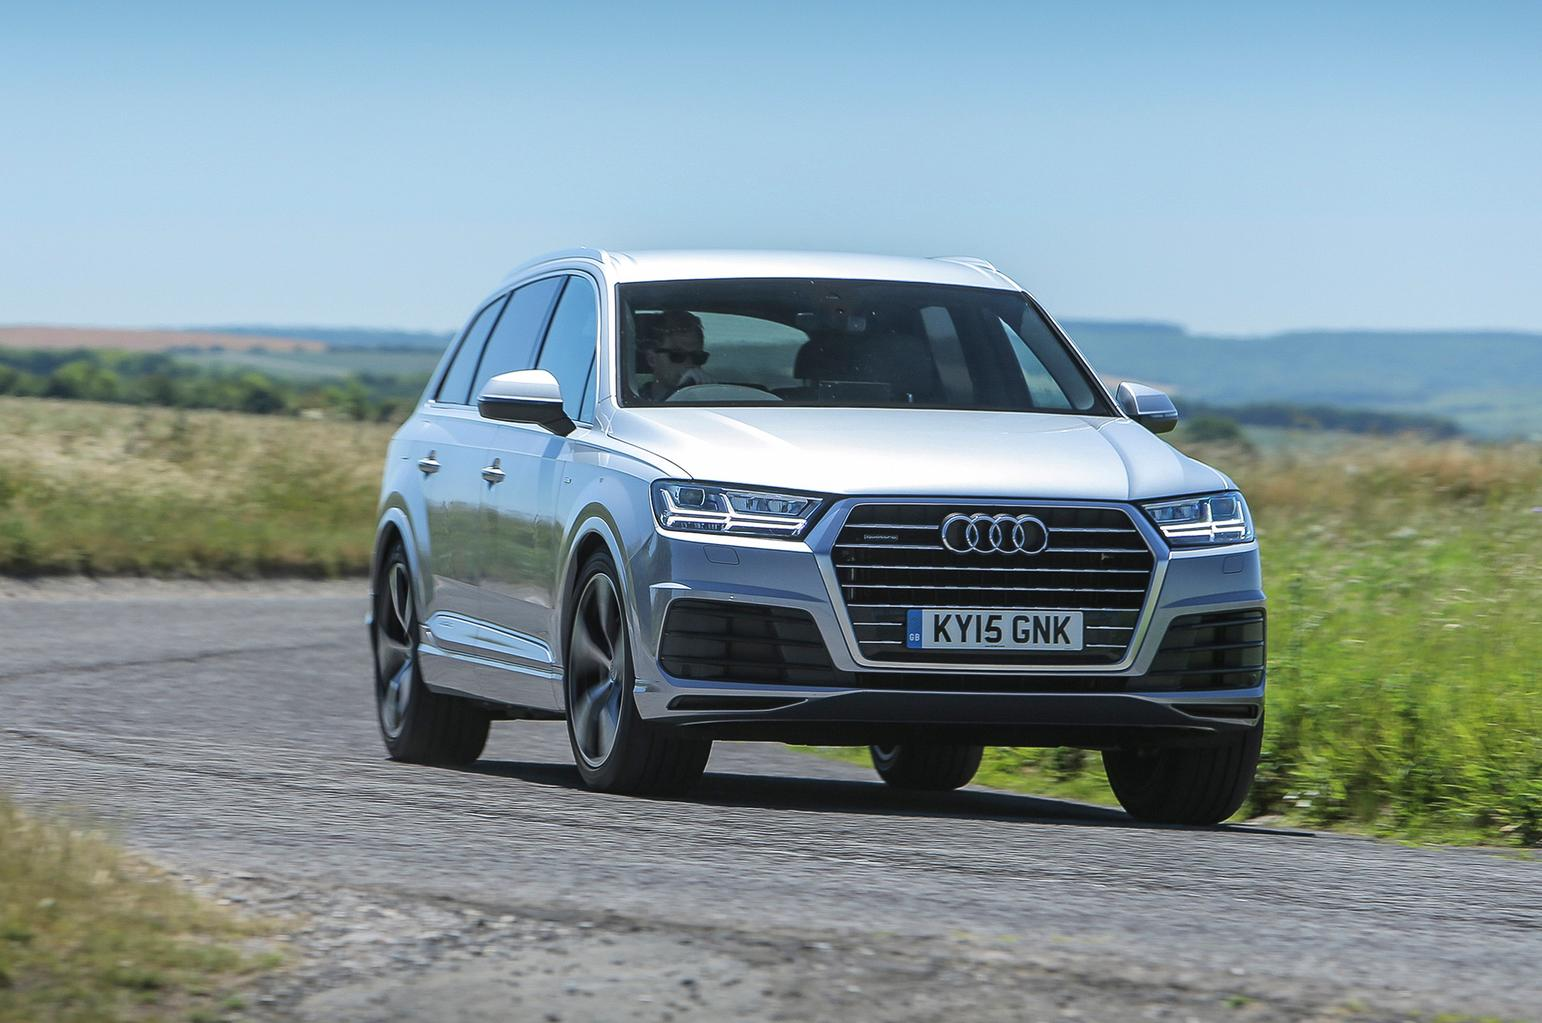 The best 4x4s and SUVs in 2016